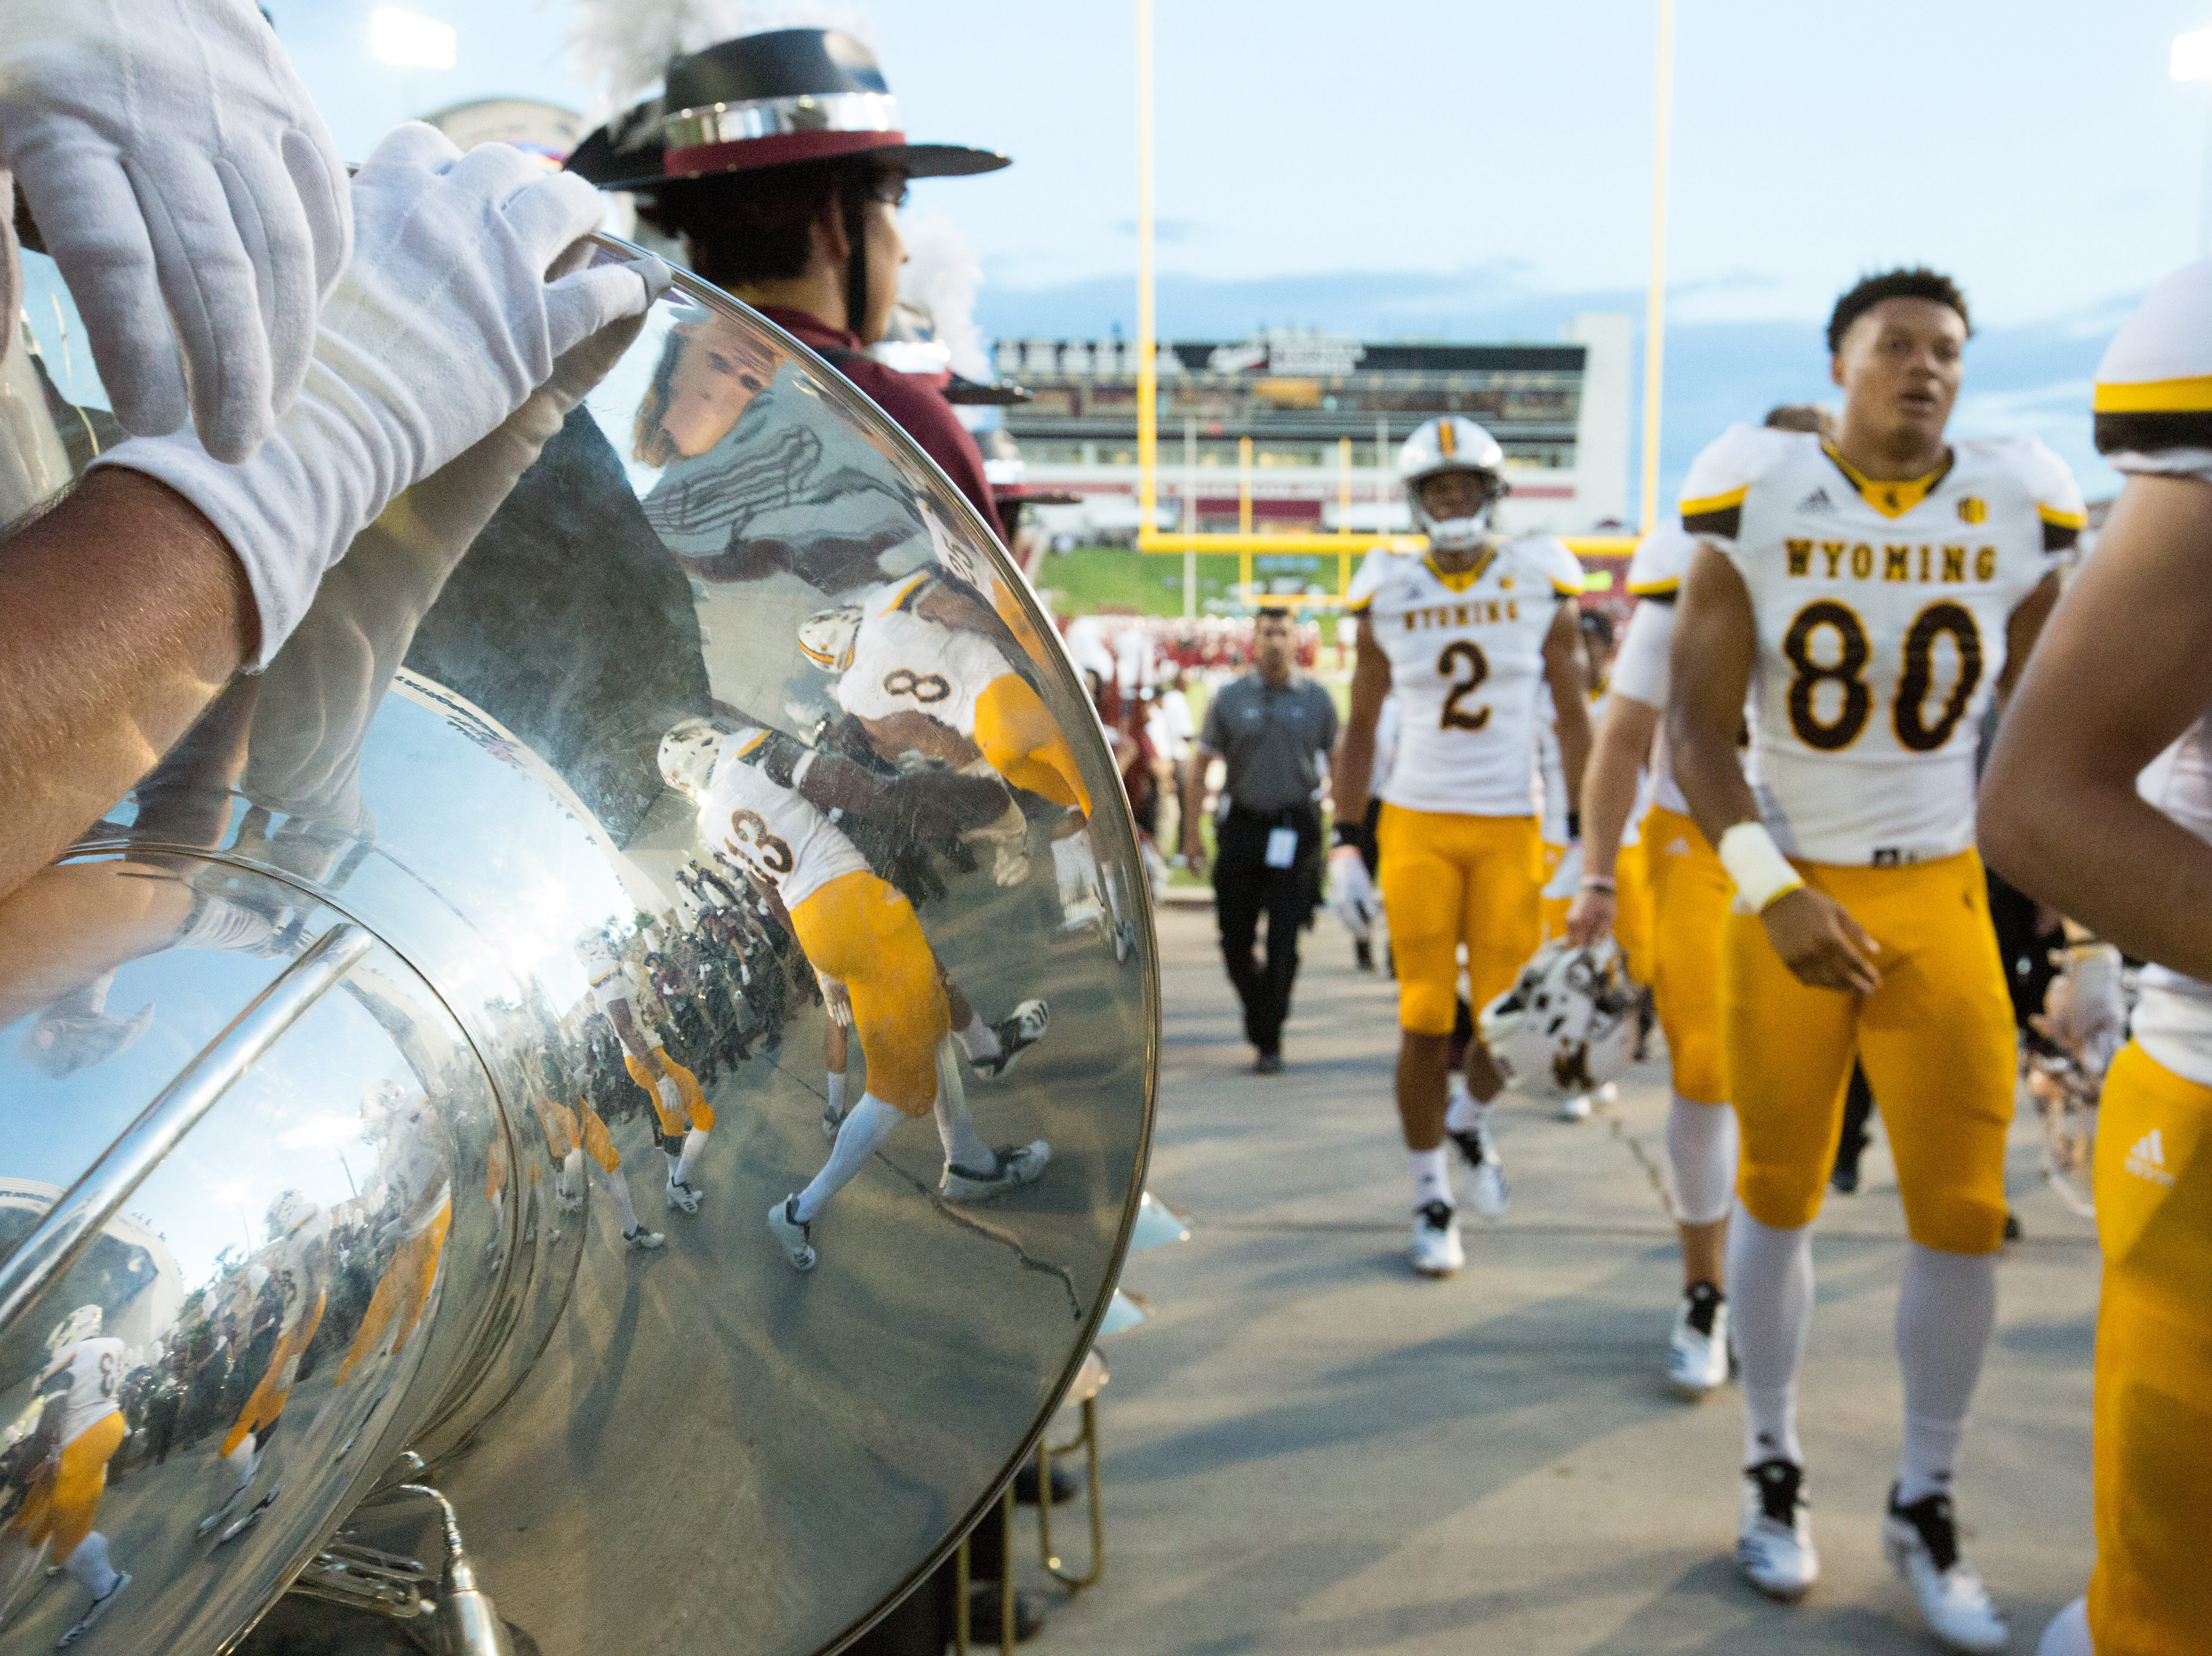 The  Wyoming football team walks up the ramp before the game on Saturday, August 25, 2018, during the NMSU/Wyoming game at the Aggie Memorial Stadium.